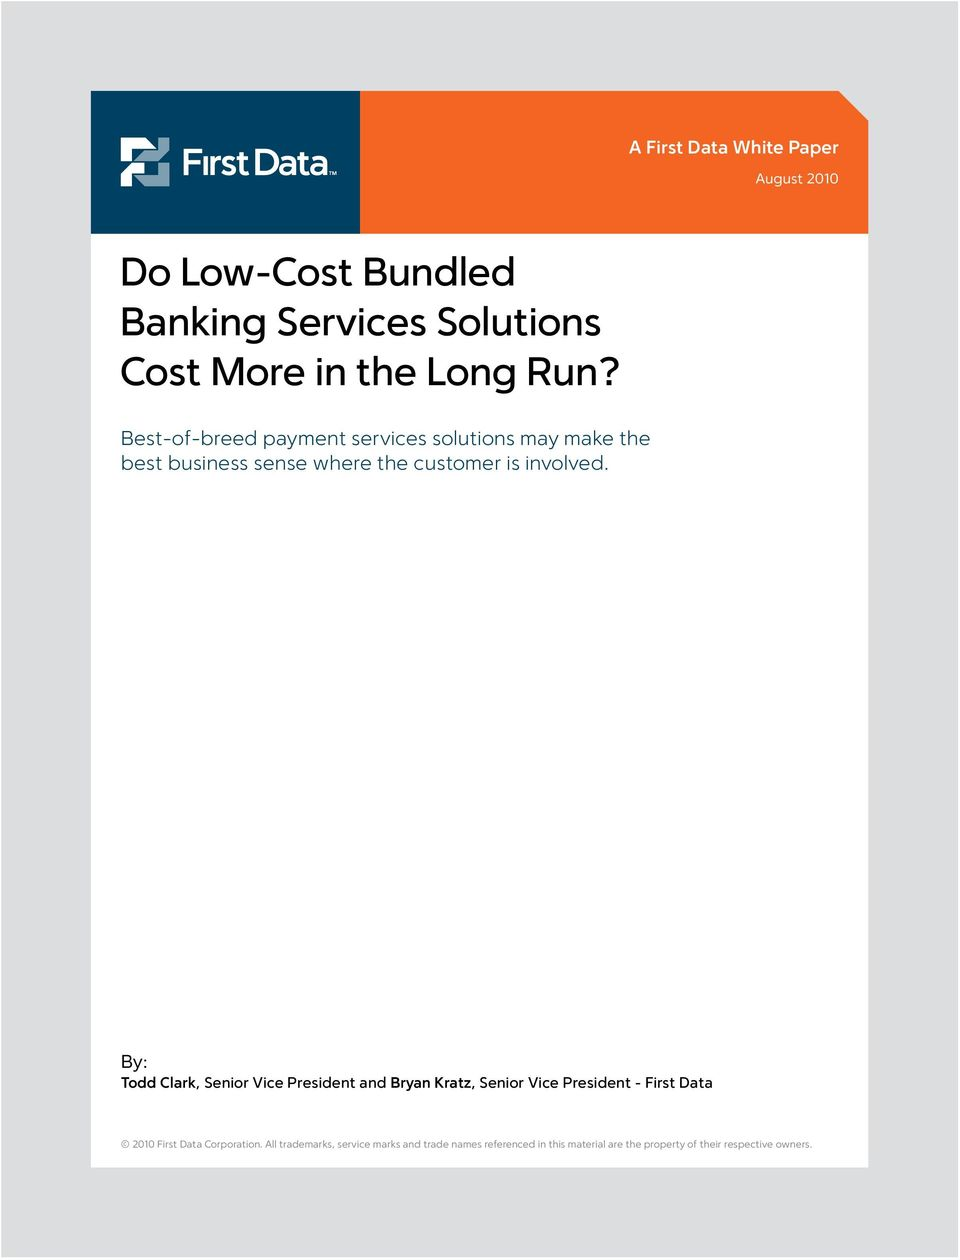 Fortunately, there are cost-effective solutions that are available to help secure sensitive data and reduce compliance costs August 2010 Do Low-Cost Bundled Banking Services Solutions Cost More in